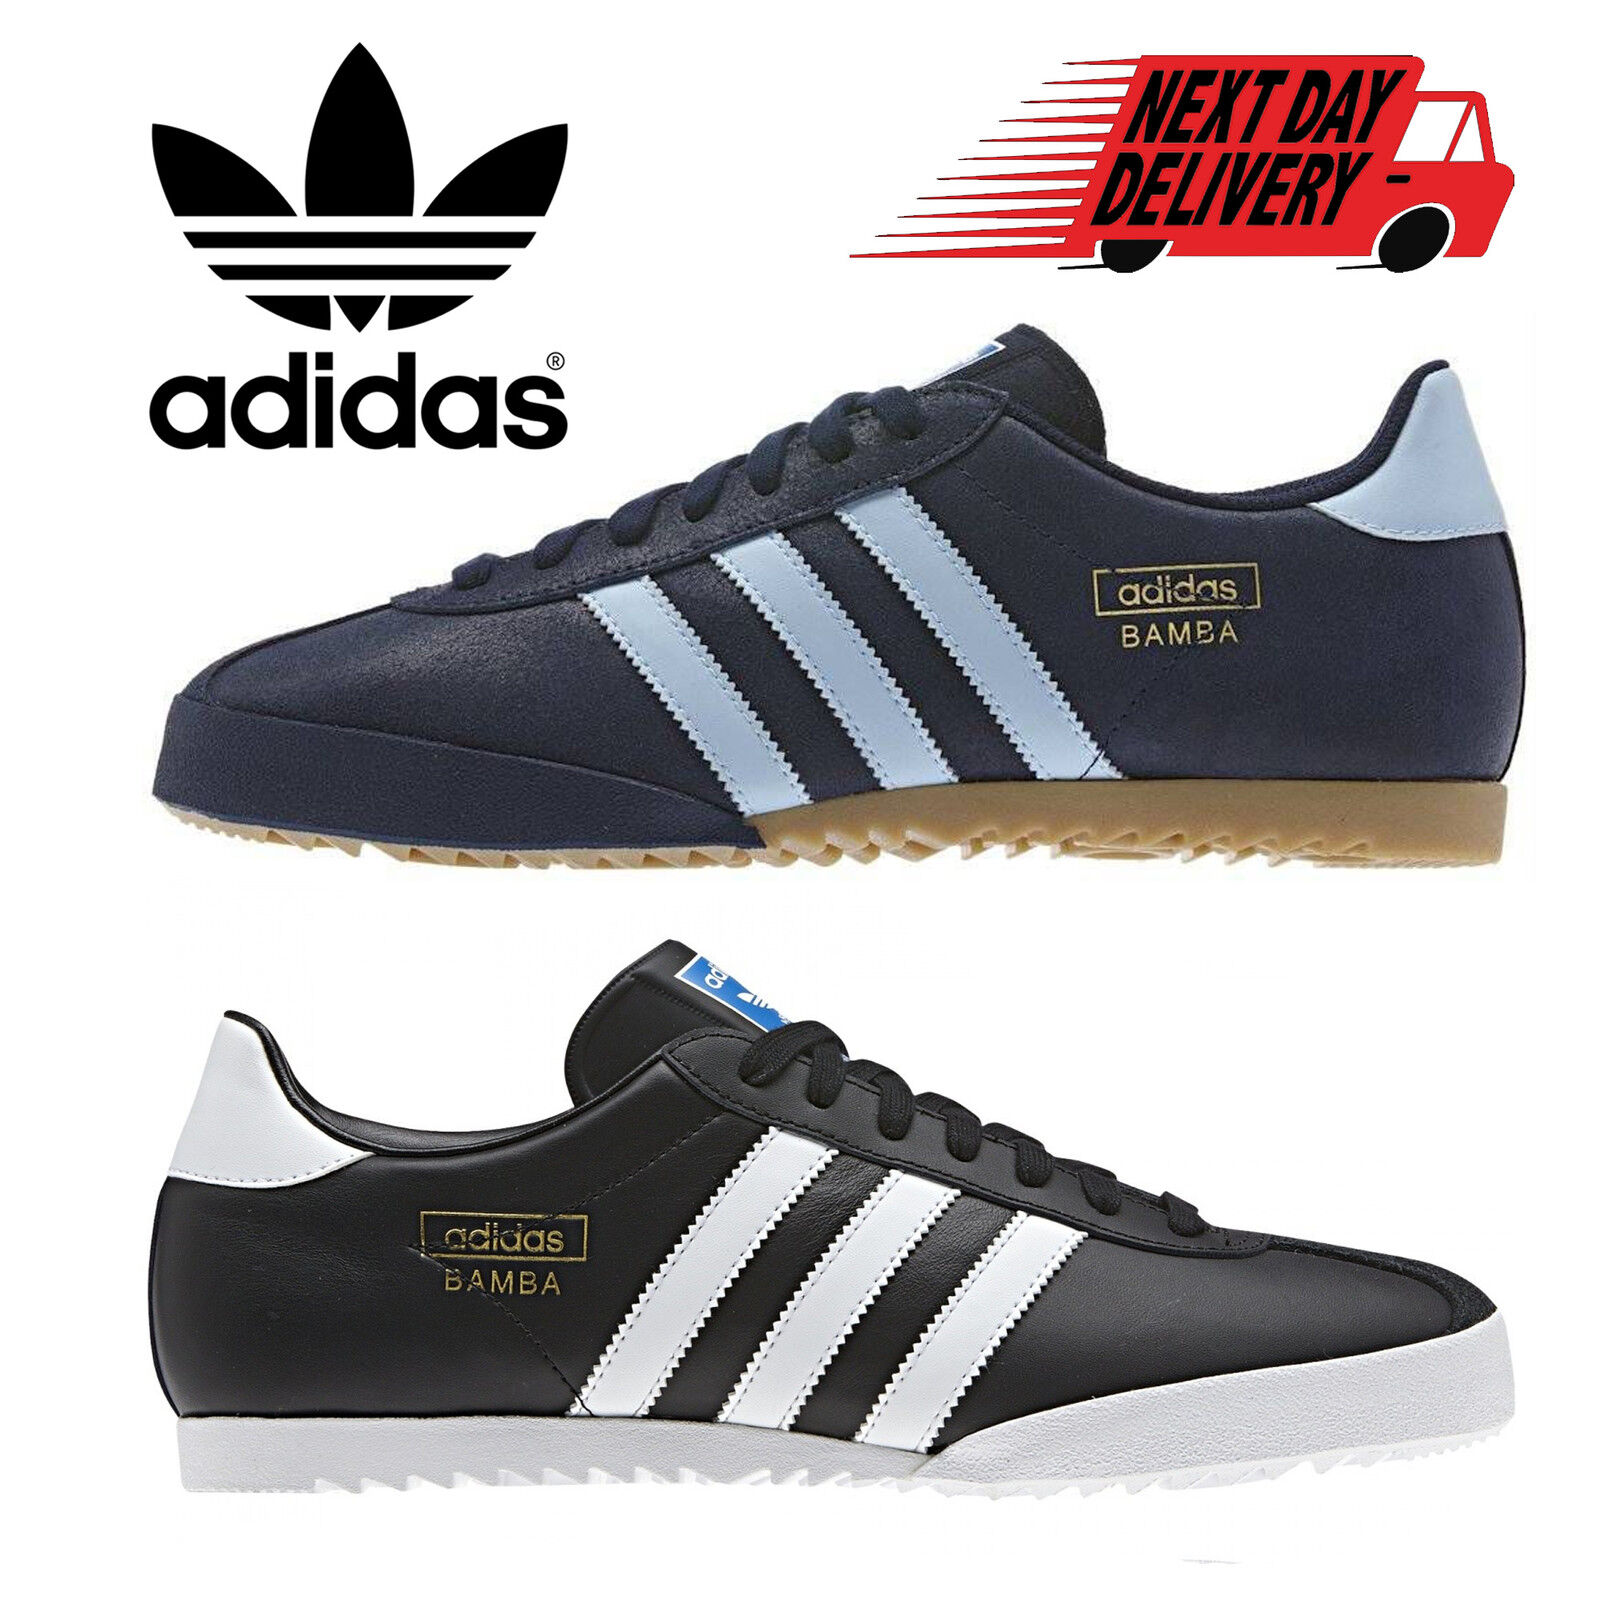 sports shoes 1f13d b866e Details about Adidas Originals Bamba Mens Trainers Casual Retro Sports  Sneakers